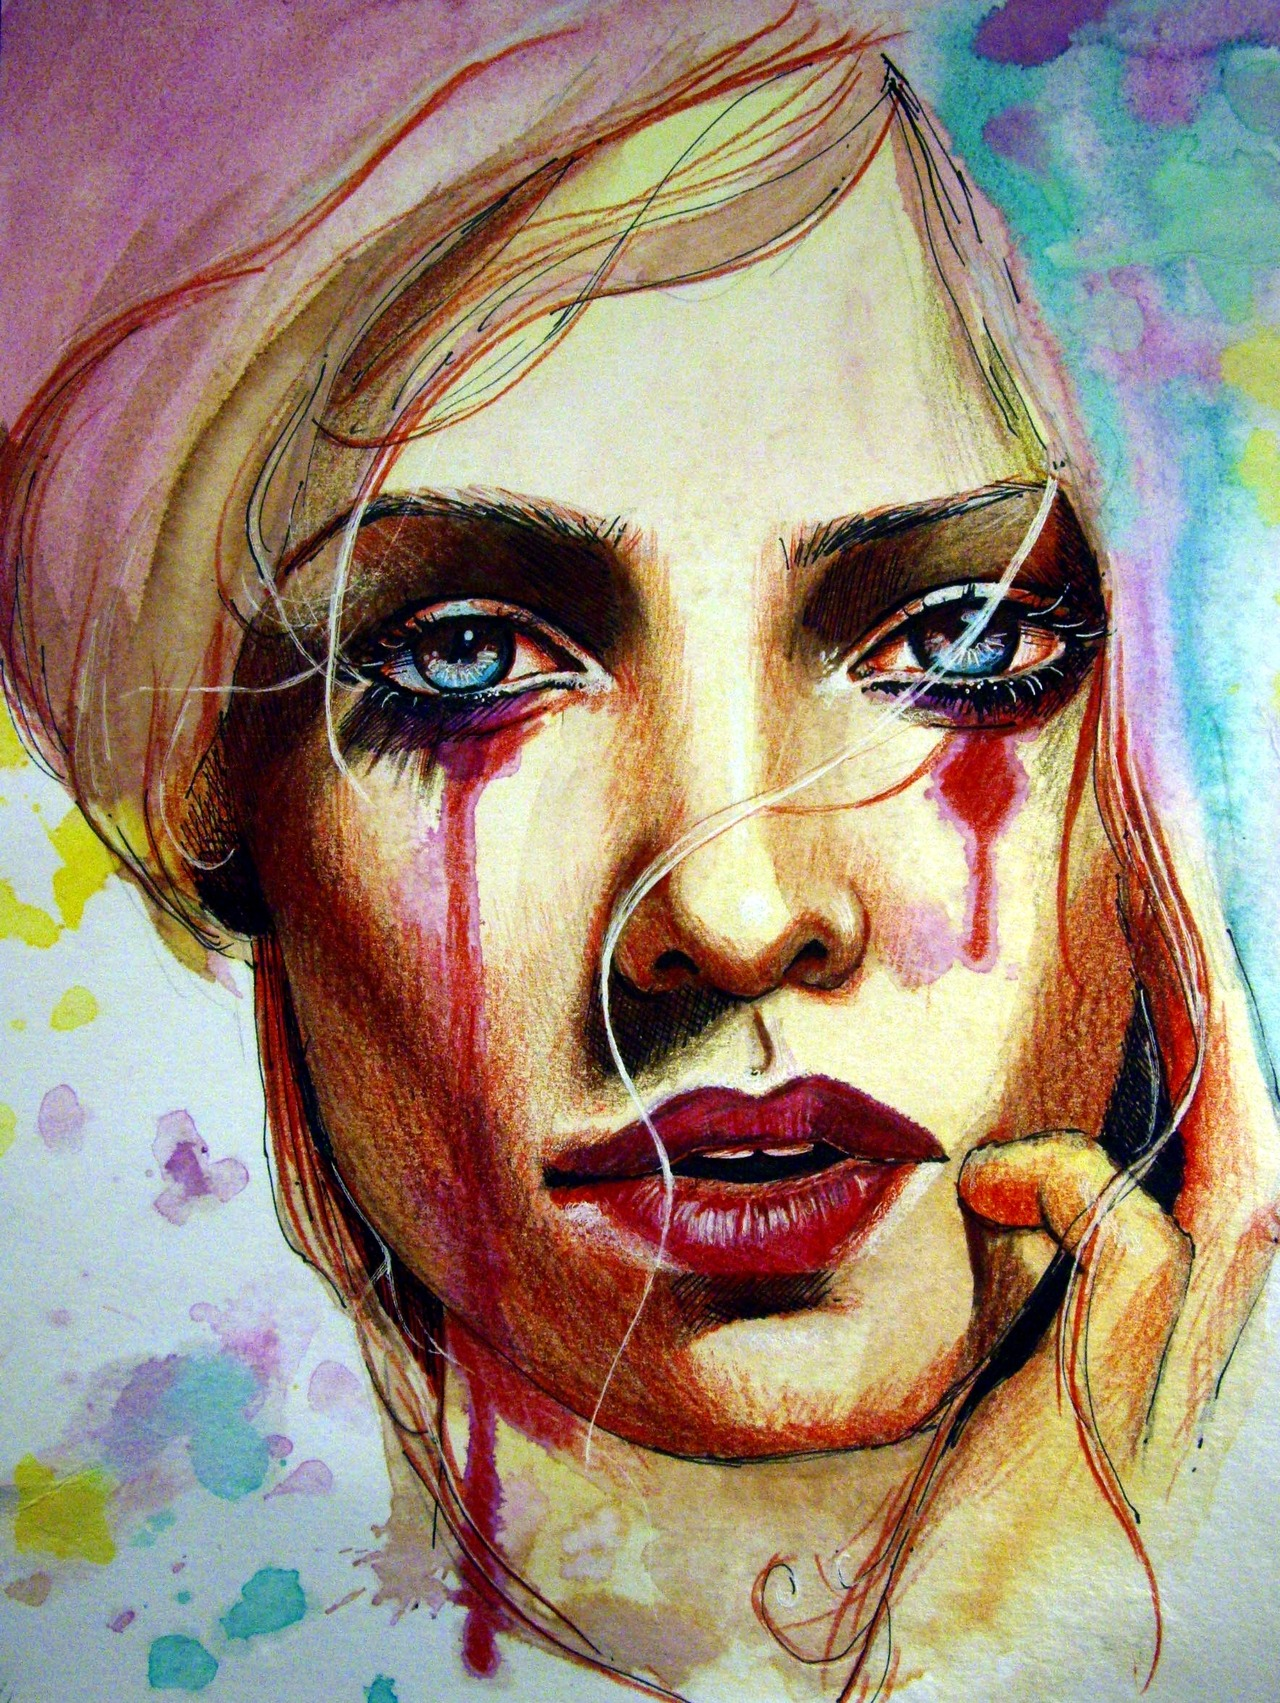 """Scarlet"" Watercolor, acrylic, ink, charcoal and color pencil on Canson paper. 9x12 inches. SEE ME MAKE IT HERE: http://www.youtube.com/watch?v=mgORYT_6Exs http://www.olganoes.com/ http://www.facebook.com/olganoes http://www.olganoes.tumblr.com/ http://www.twitter.com/olganoes8"